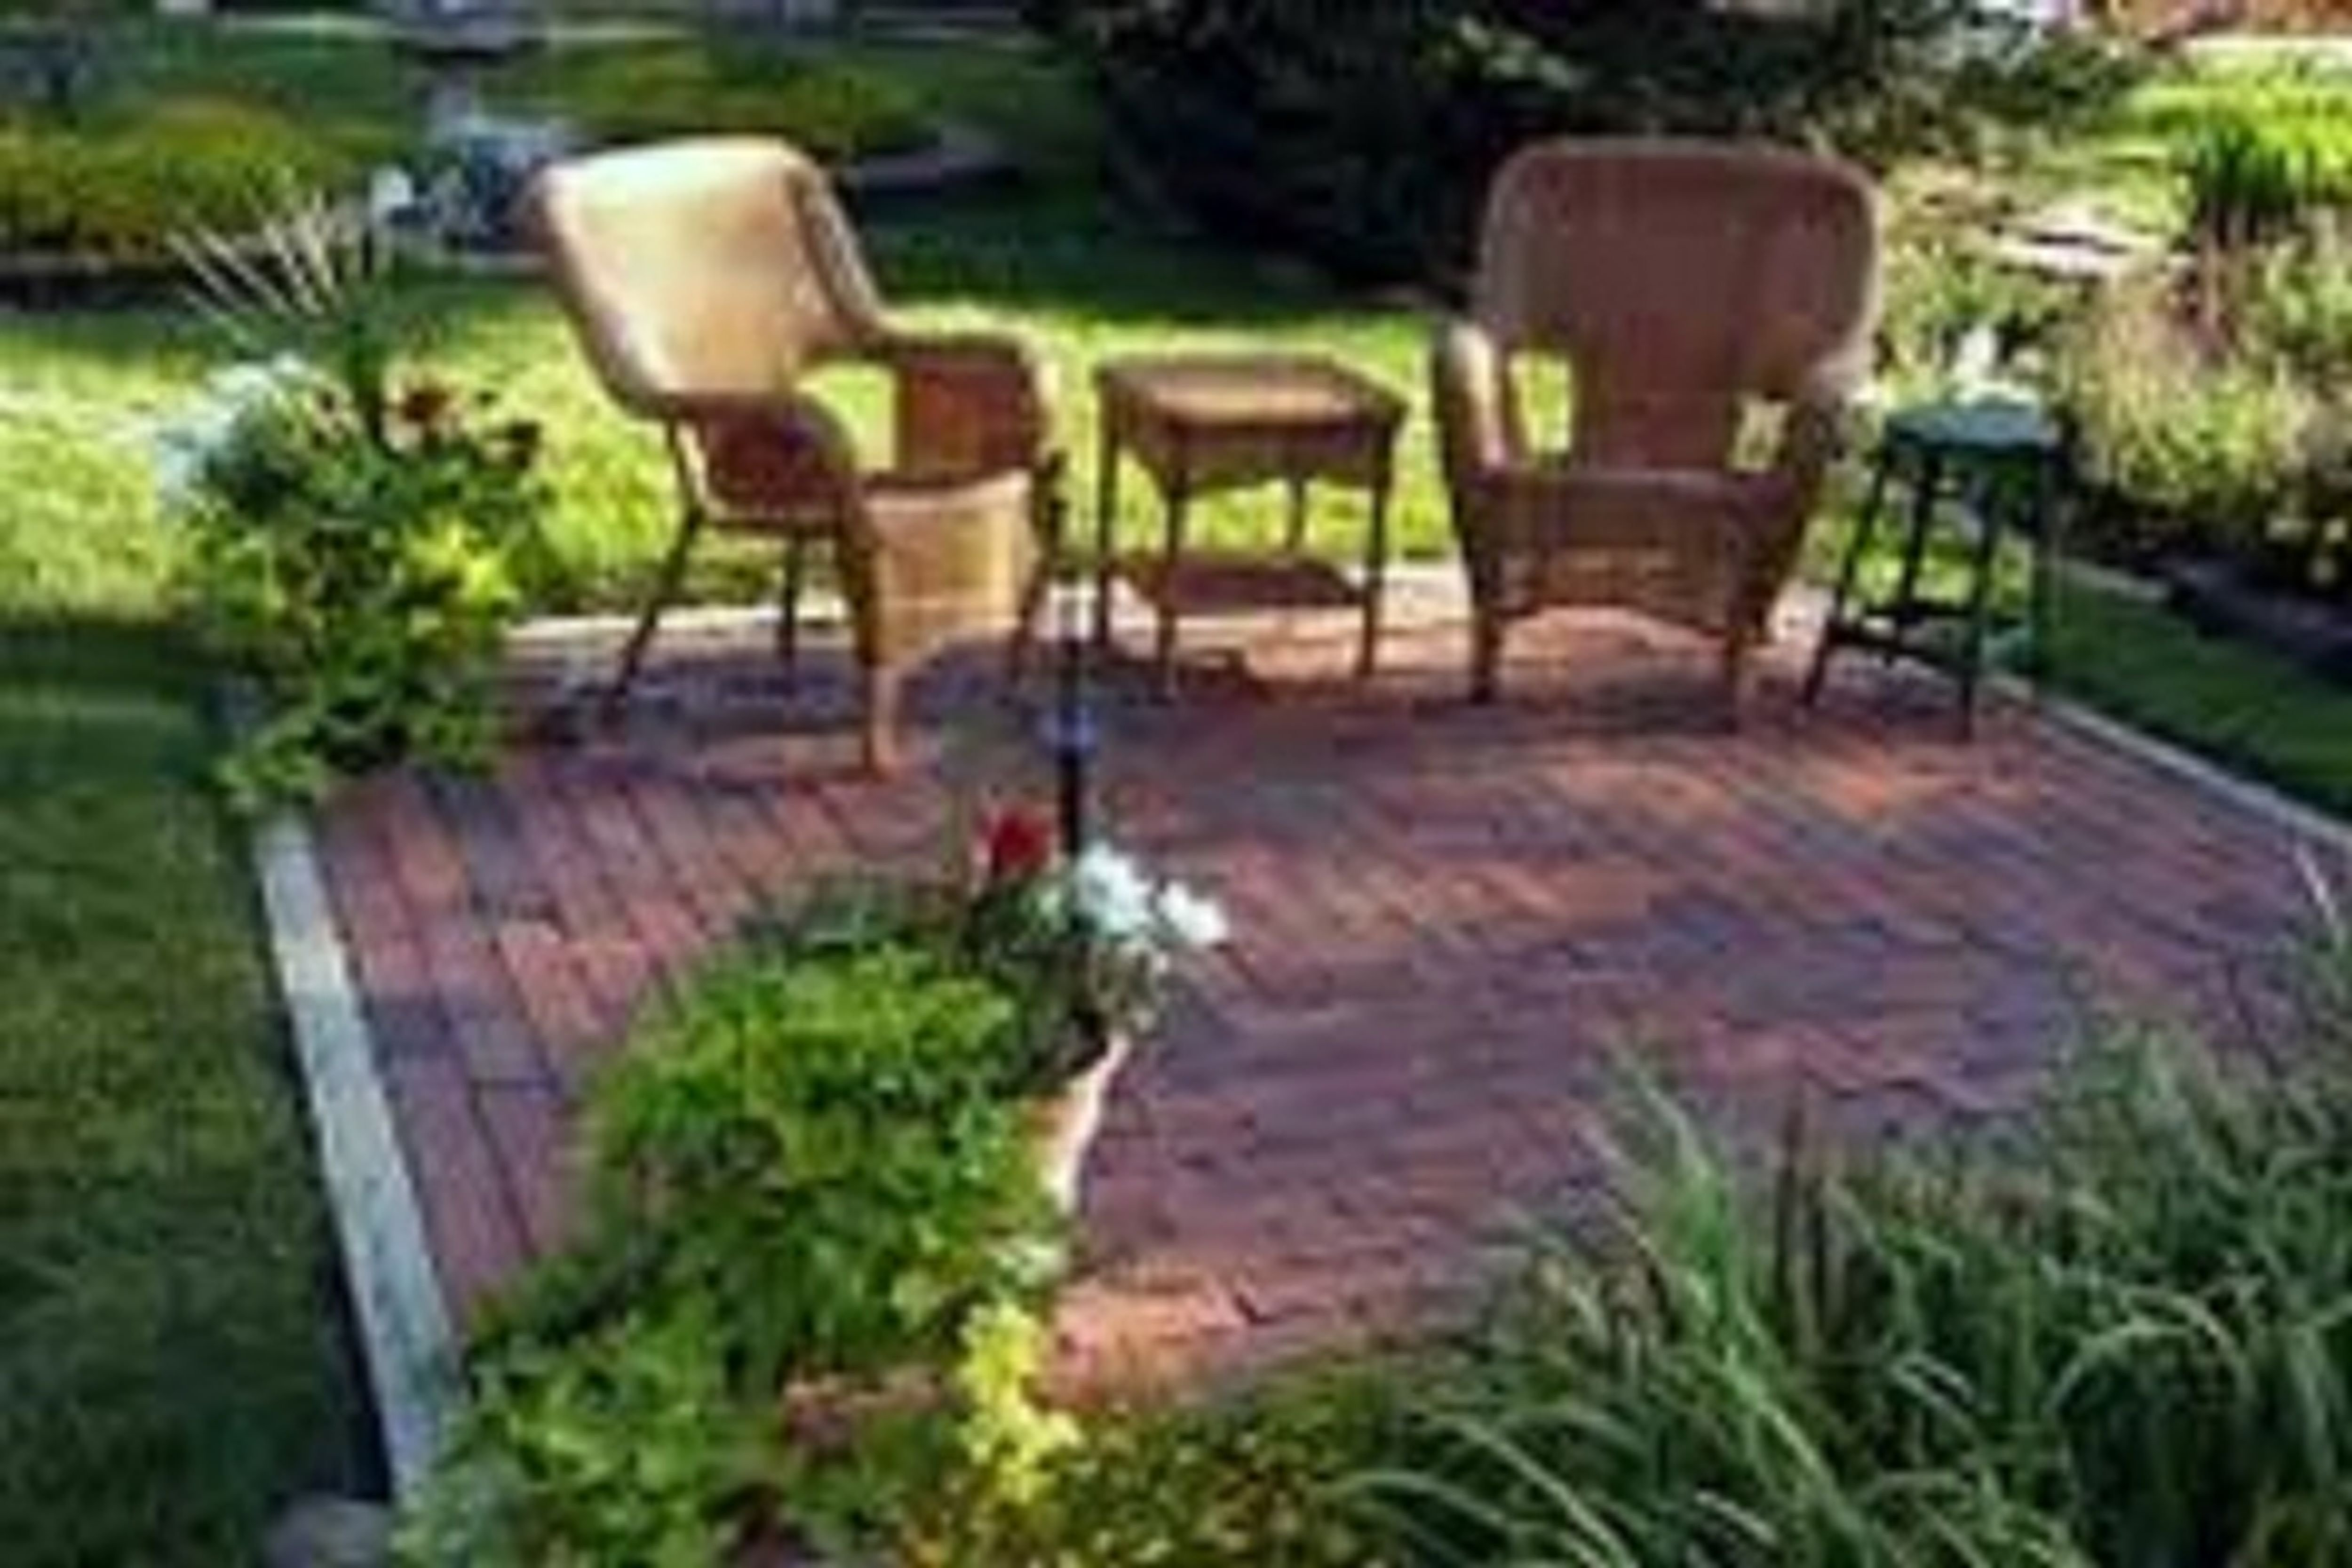 10 Spectacular Landscaping Ideas For Backyard On A Budget cheap backyard landscaping ideas no grass on a budget of diy the and 2021